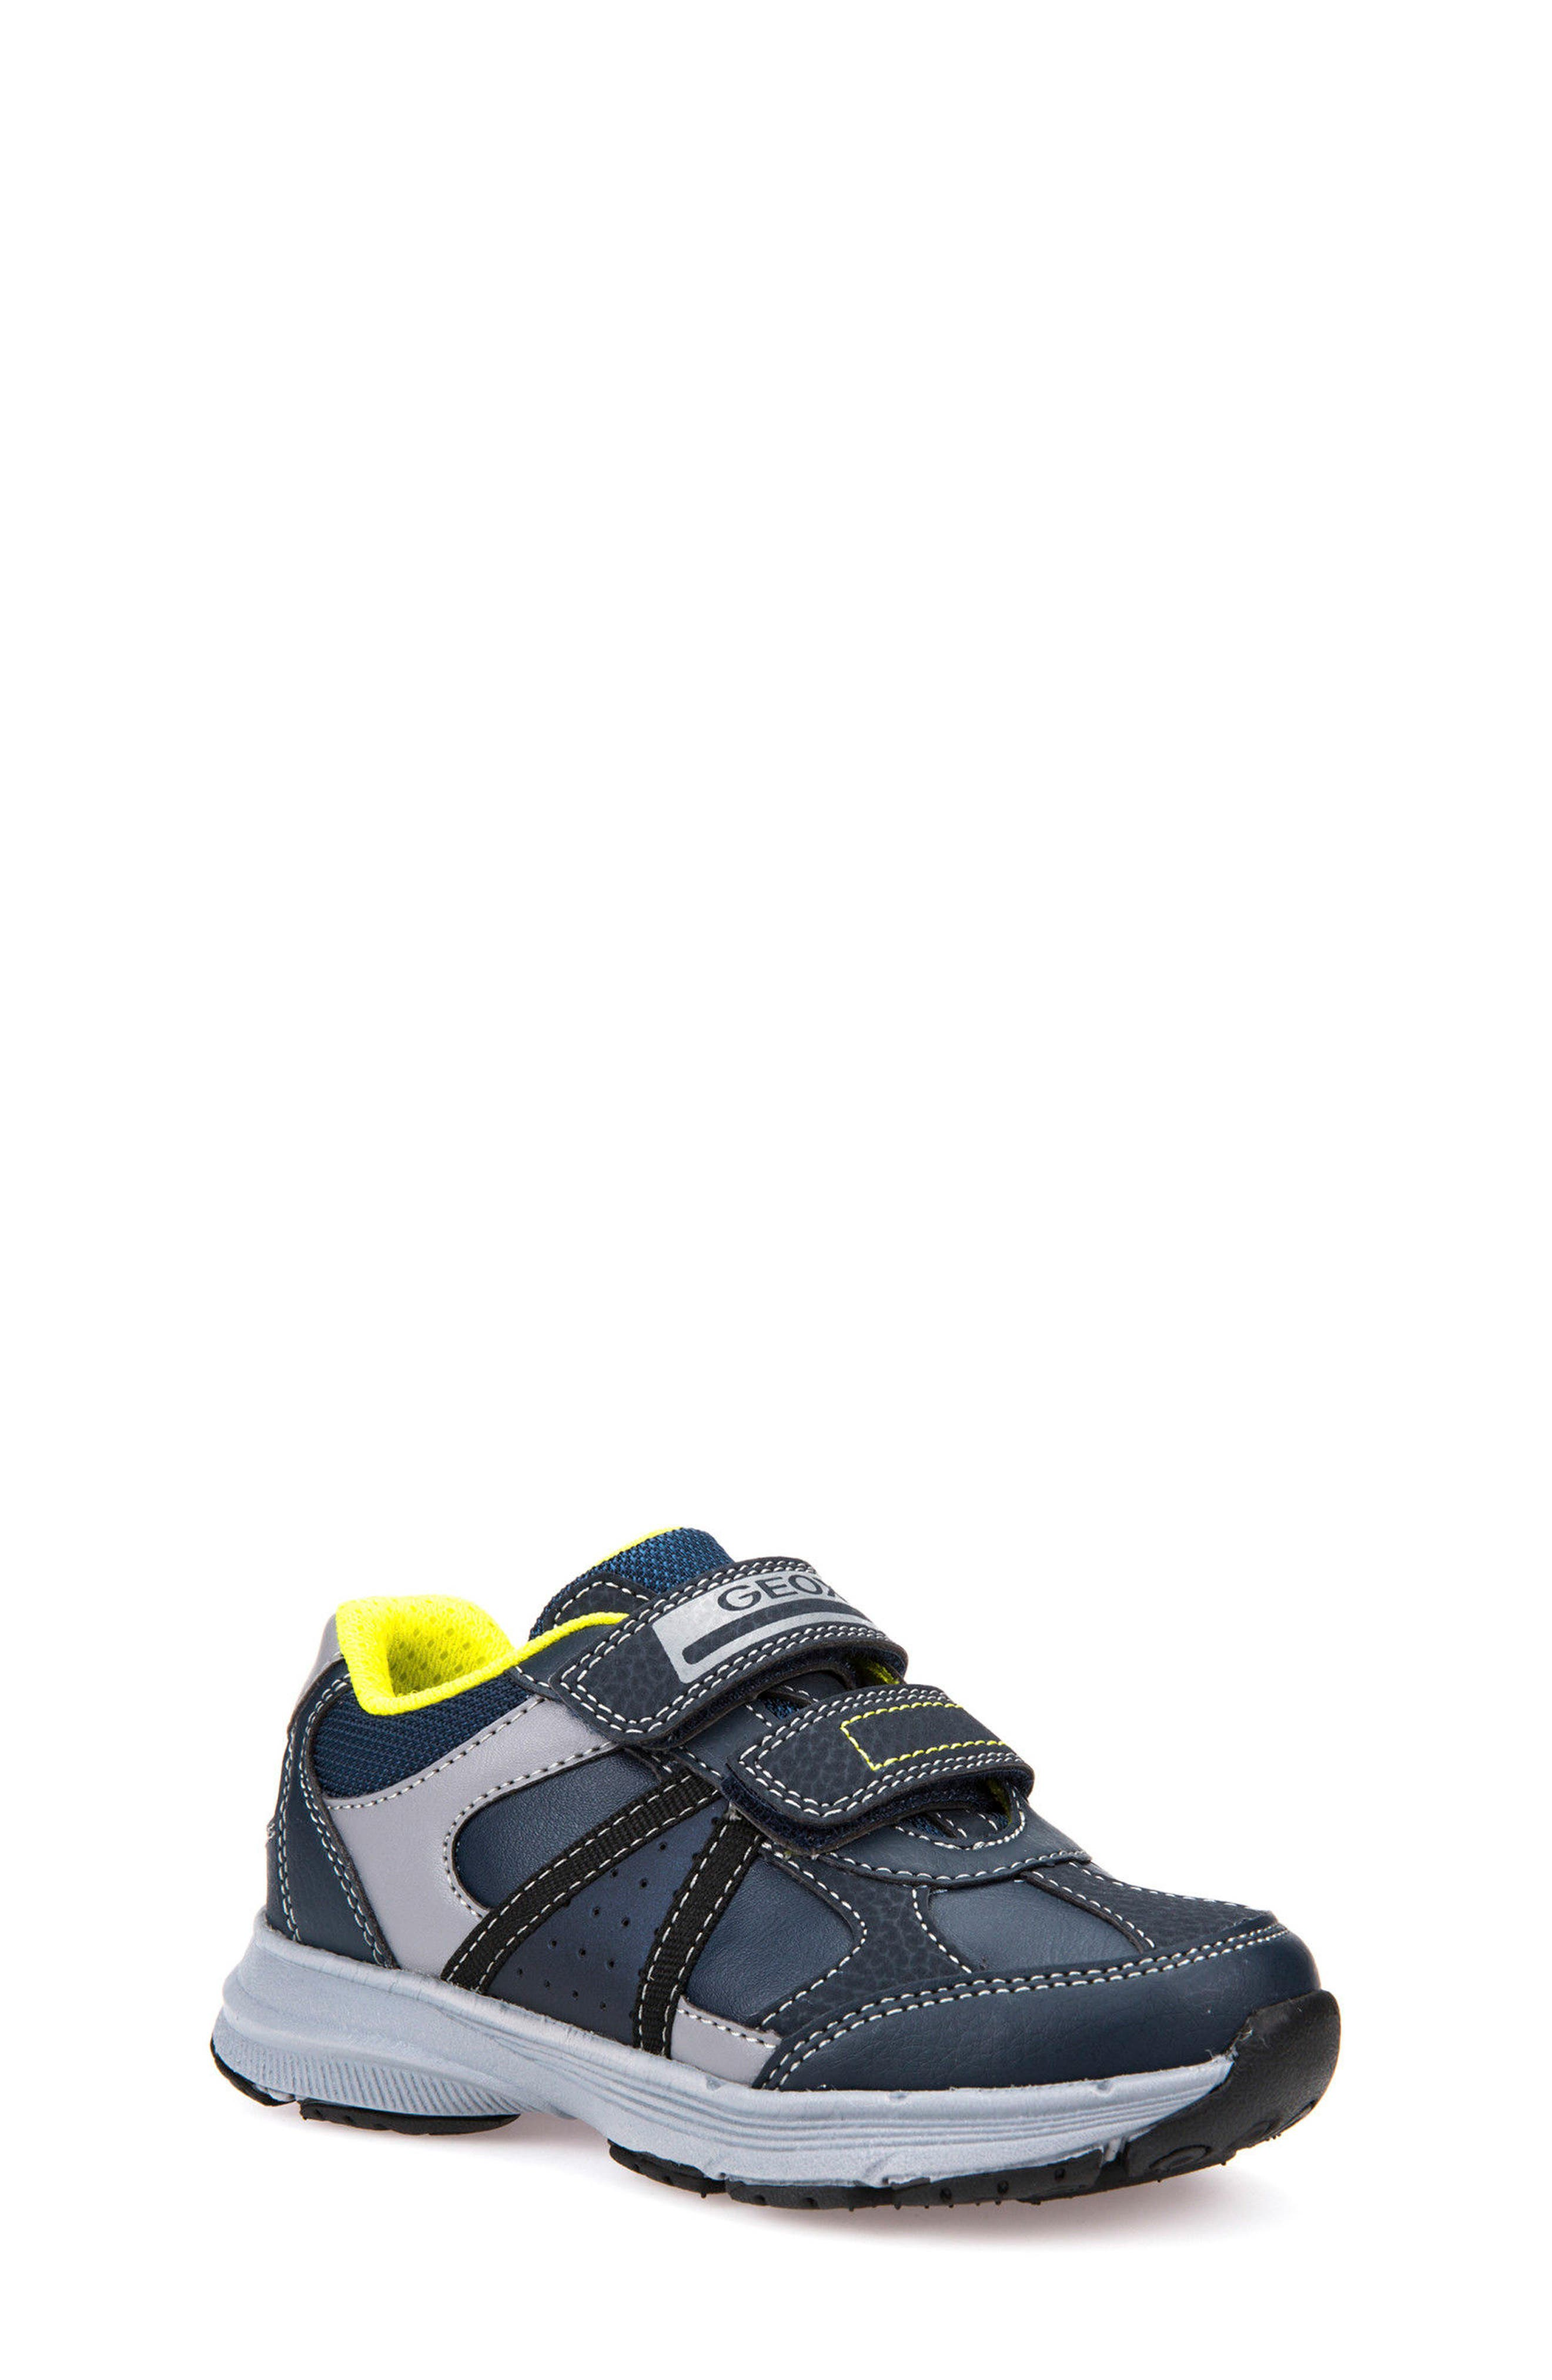 Top Fly Sneaker,                         Main,                         color, Navy